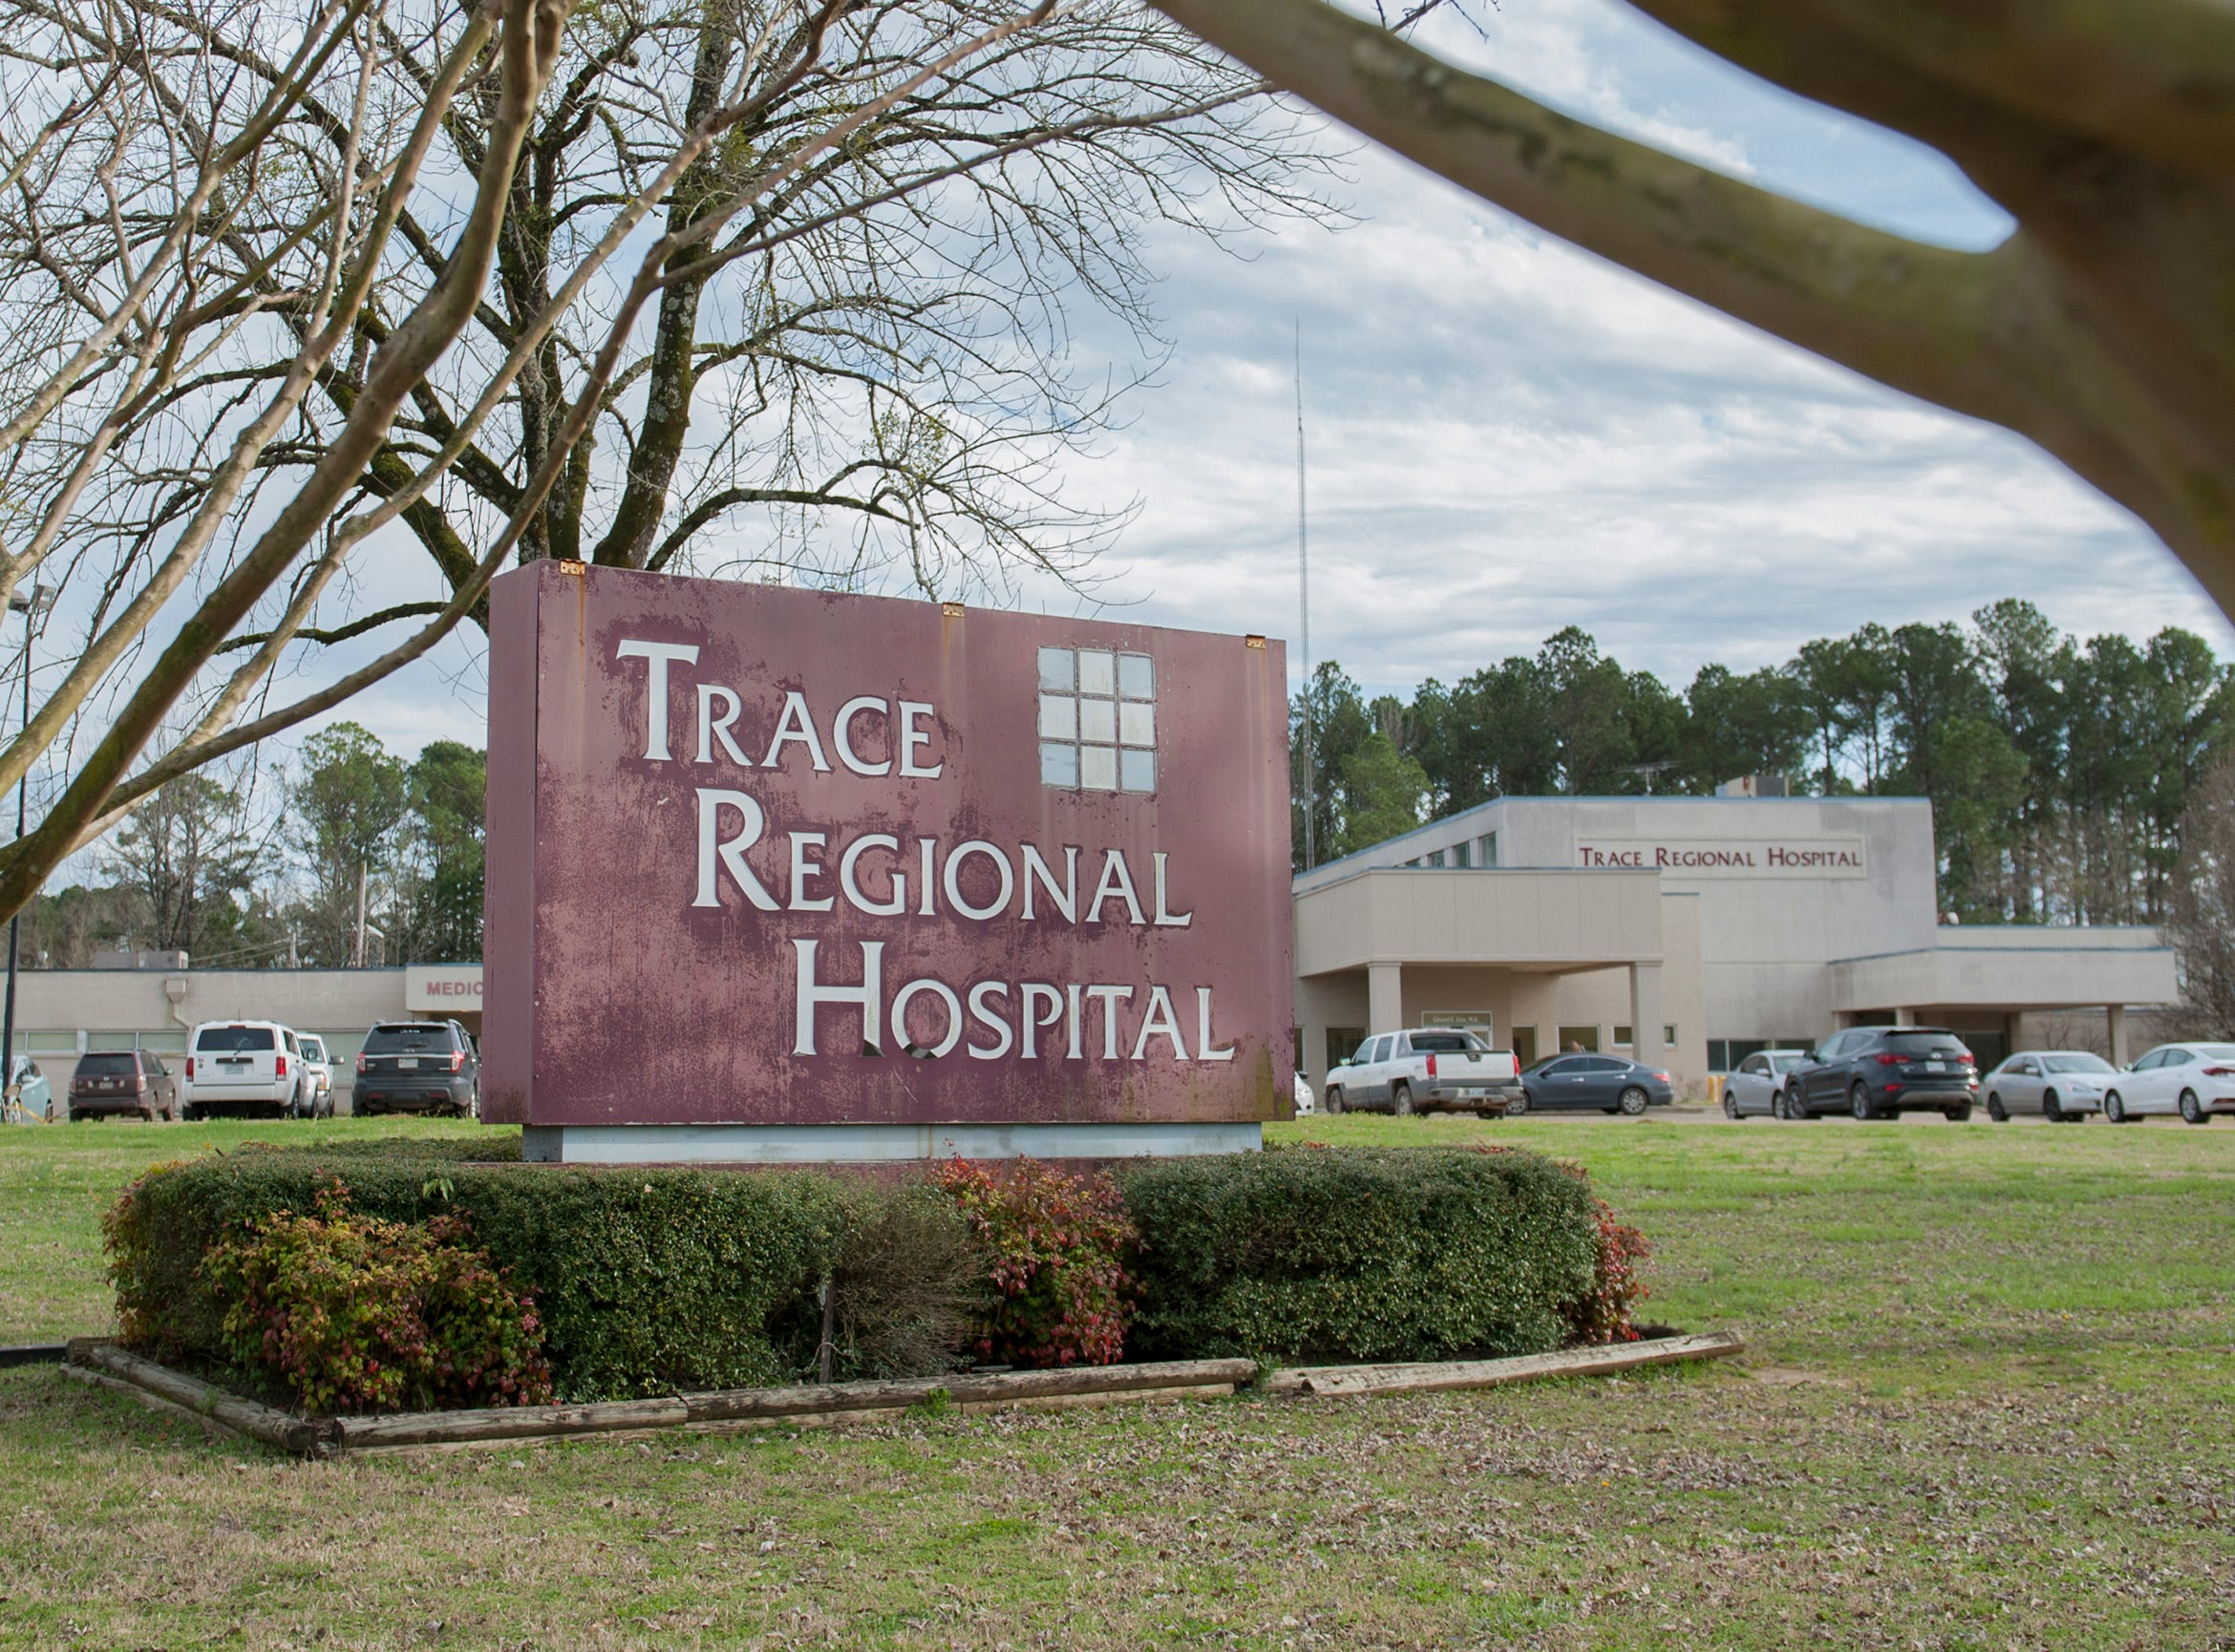 In 2014, the emergency room at Trace Regional Hospital in Houston was closed, leaving two ambulances to cover all of Chickasaw County, a county of about 17,000 people.